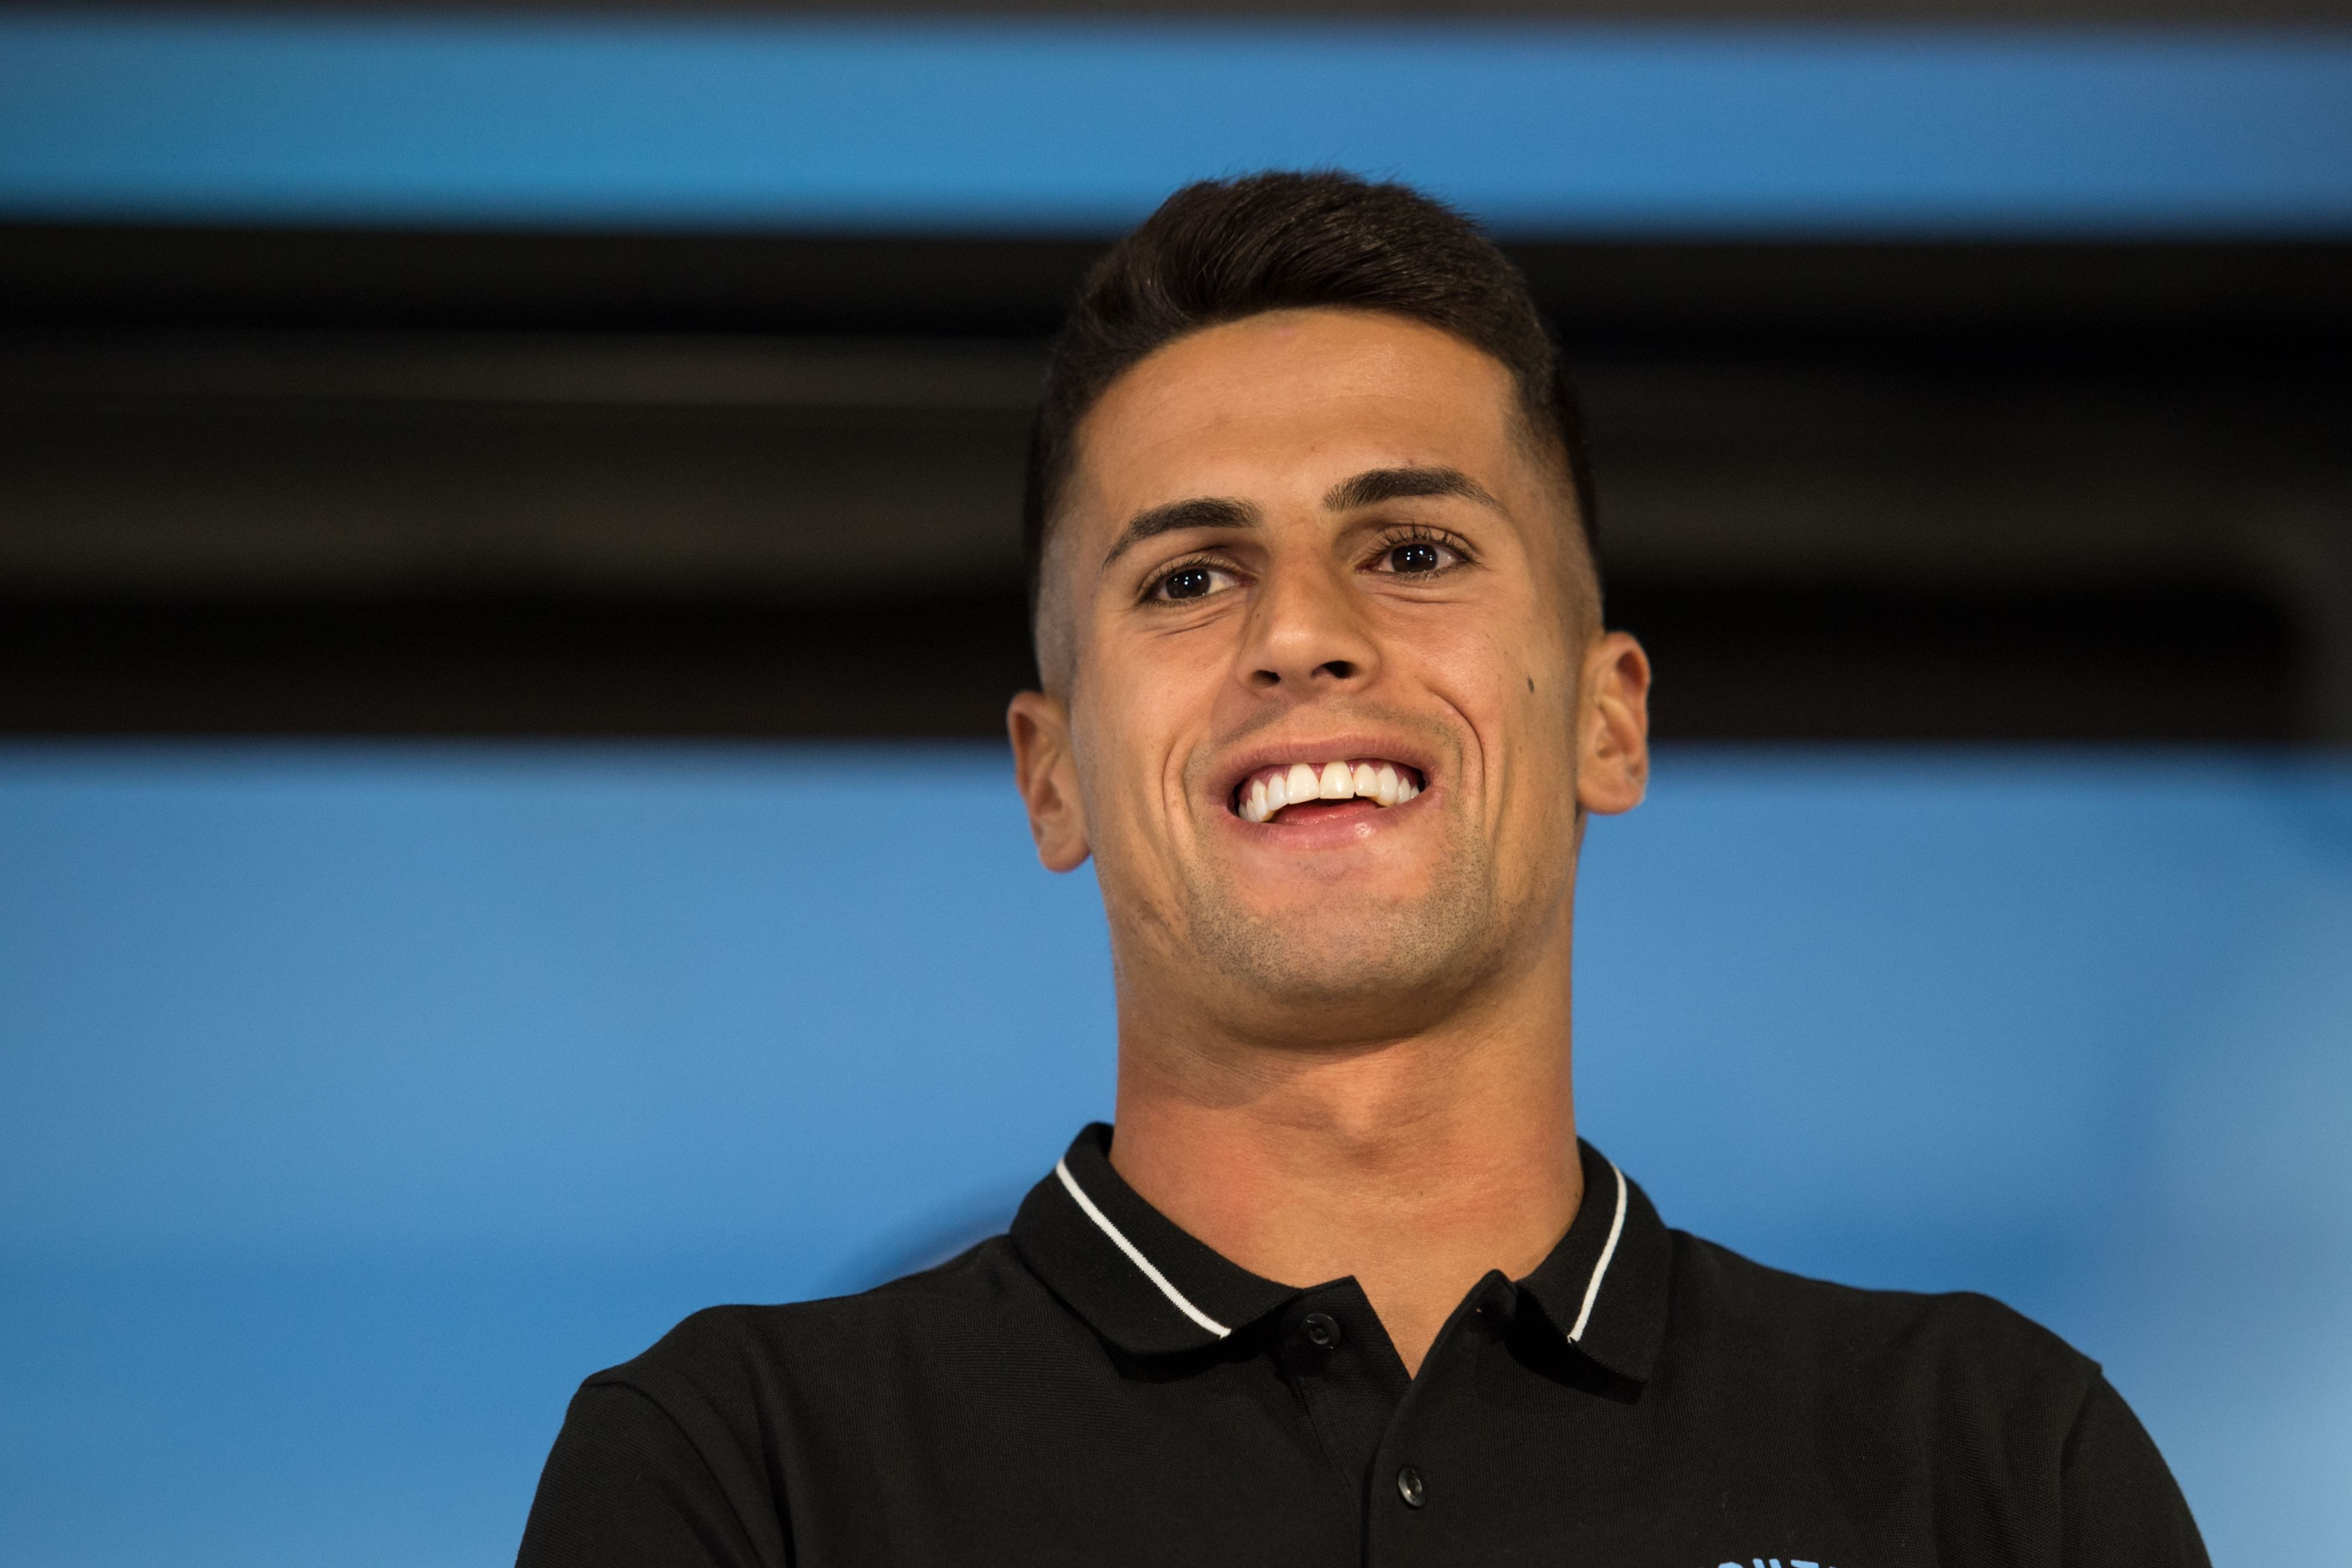 Joao Cancelo wanted by Barcelona (Photo by Oli Scarff/AFP/Getty Images)